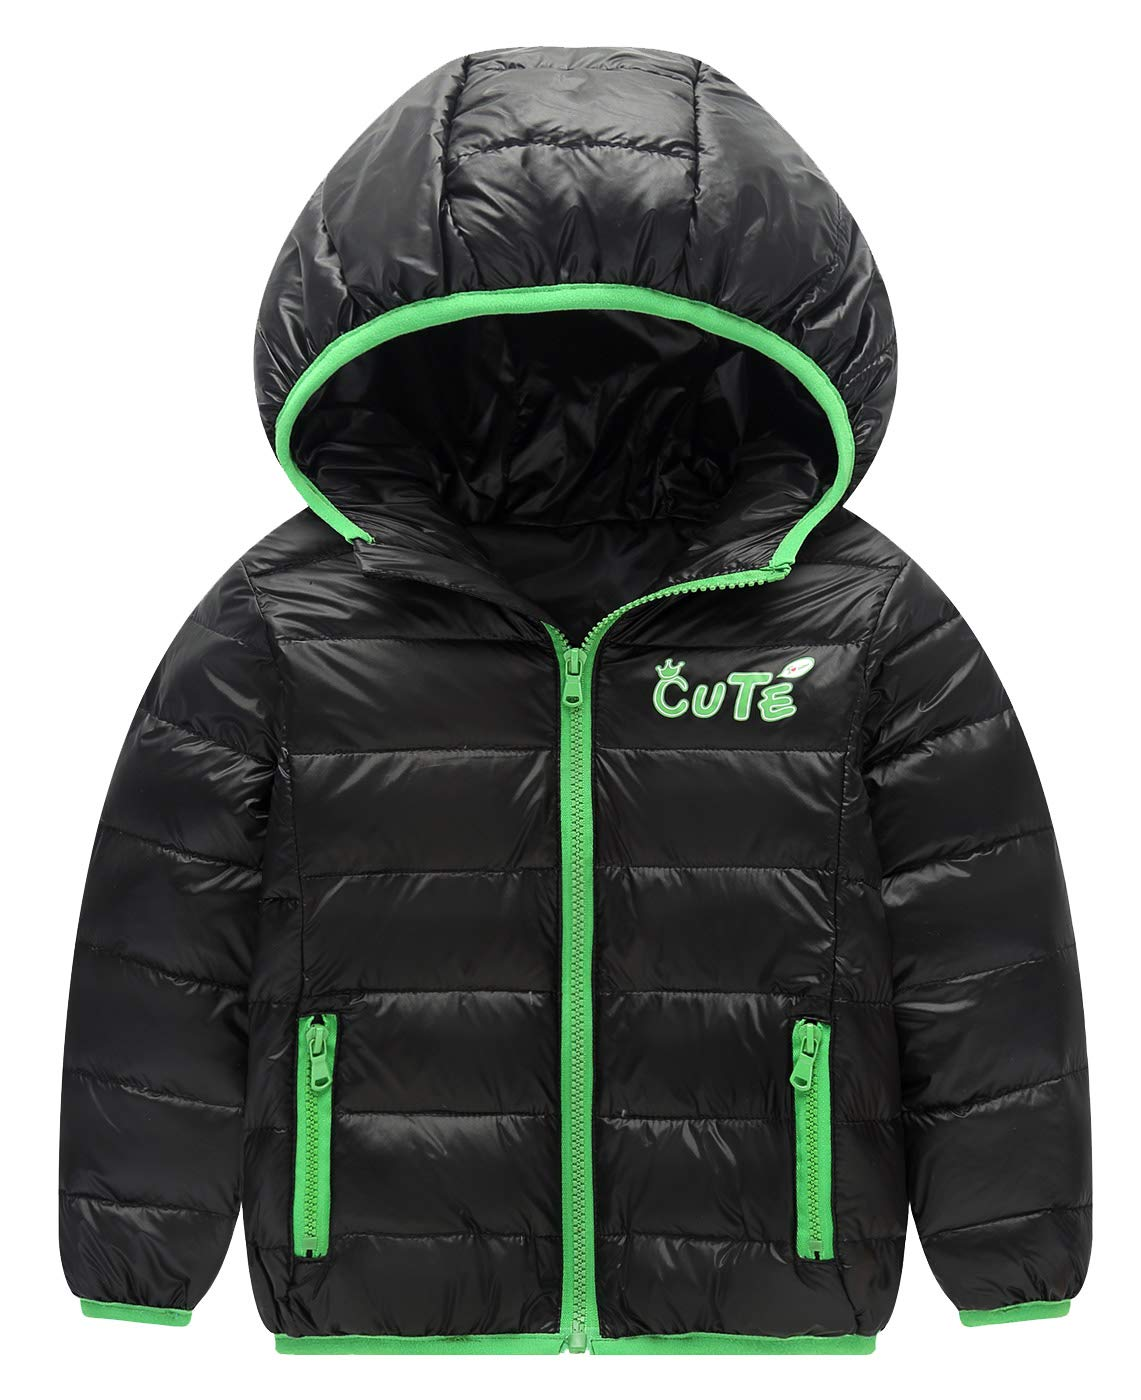 Toddler Winter Puffer Down Warm Coat Thicken Zipper Hoodie Outwear Lightweight Windproof Jacket 2-3T Orange Happy Cherry